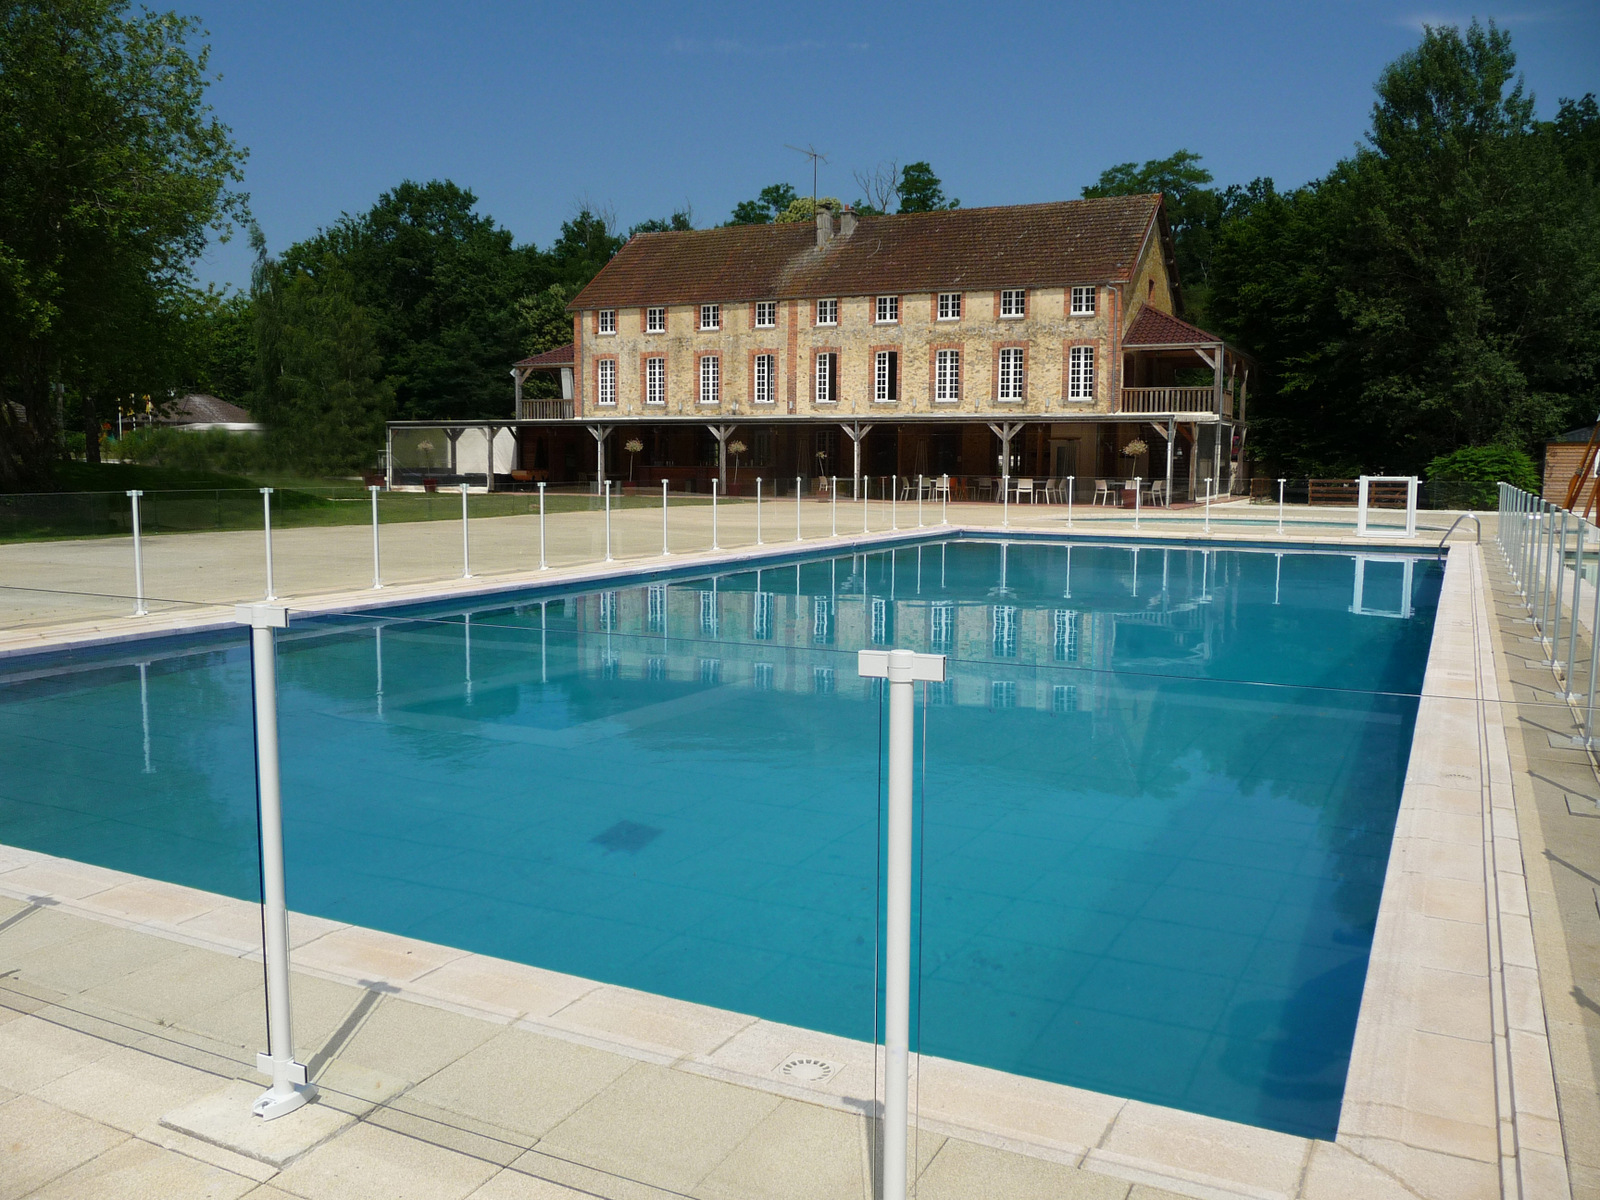 Barri re de piscine en aluminium et protection aluminium for Portillon piscine verre